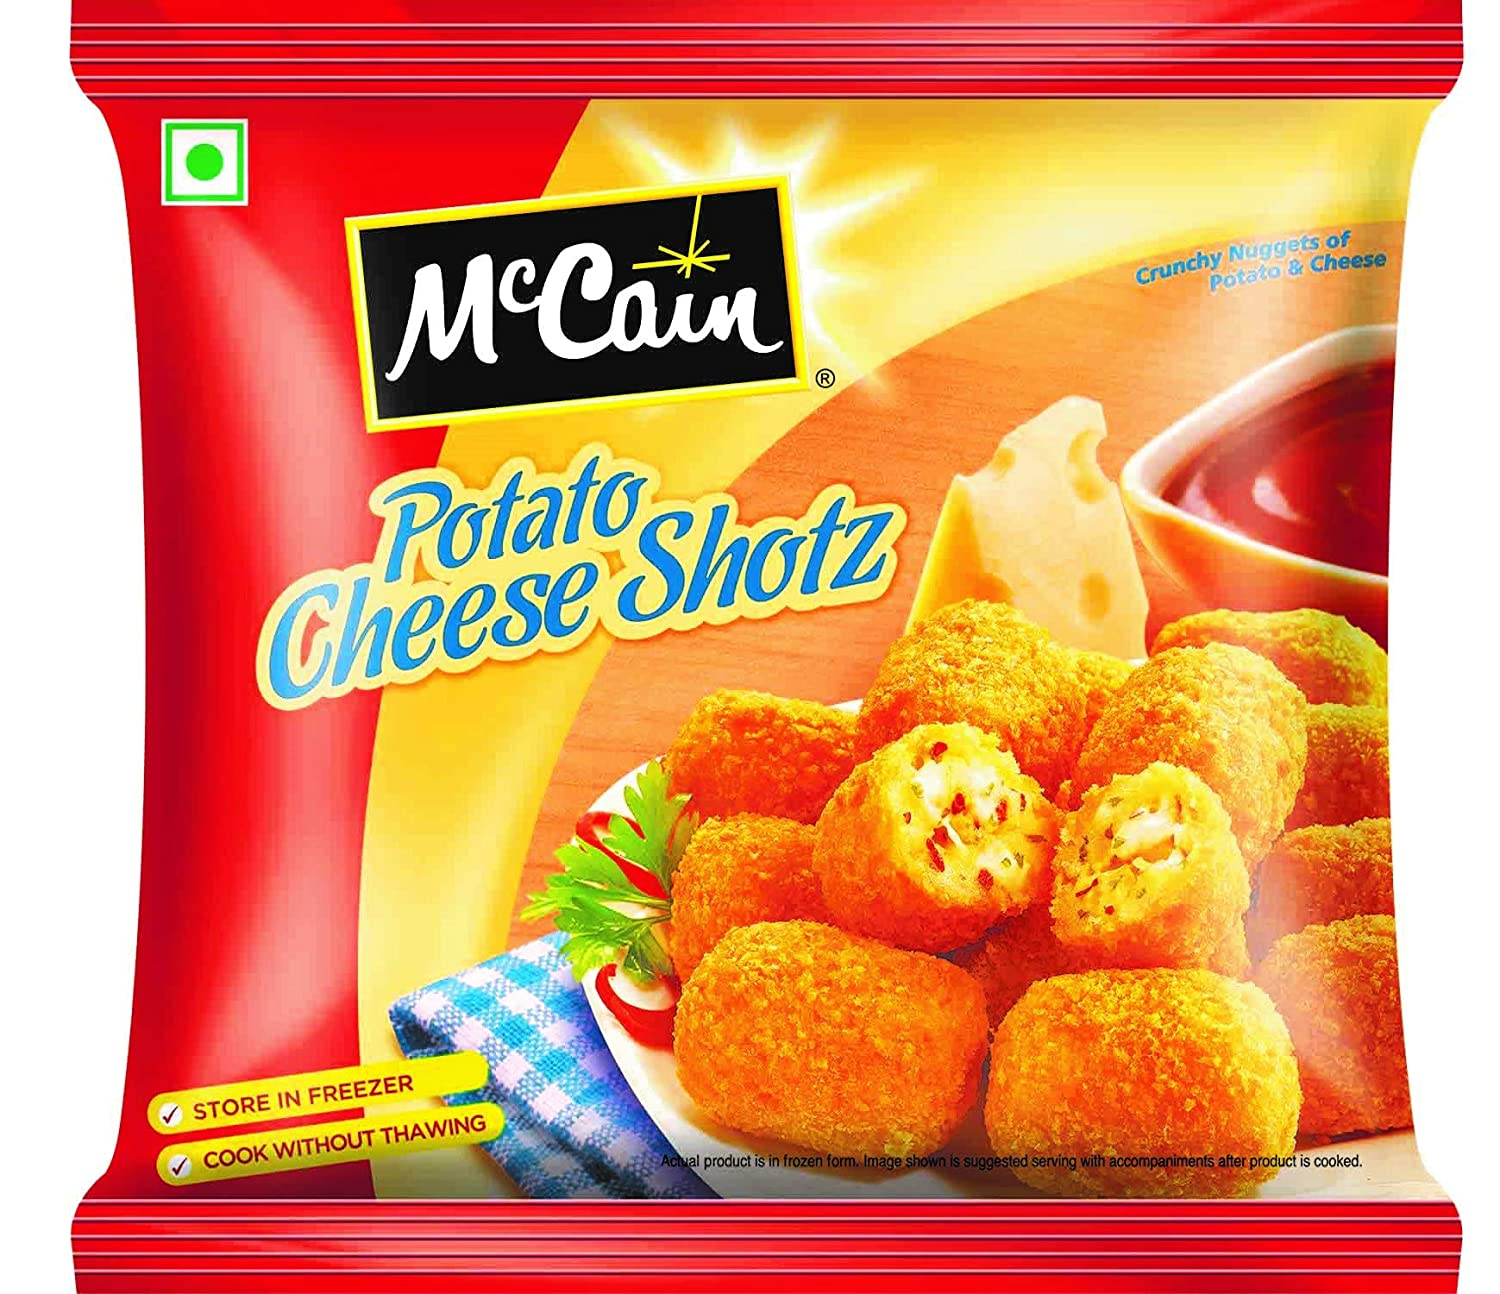 MCCAIN POTATO CHEESE SHOTS PP